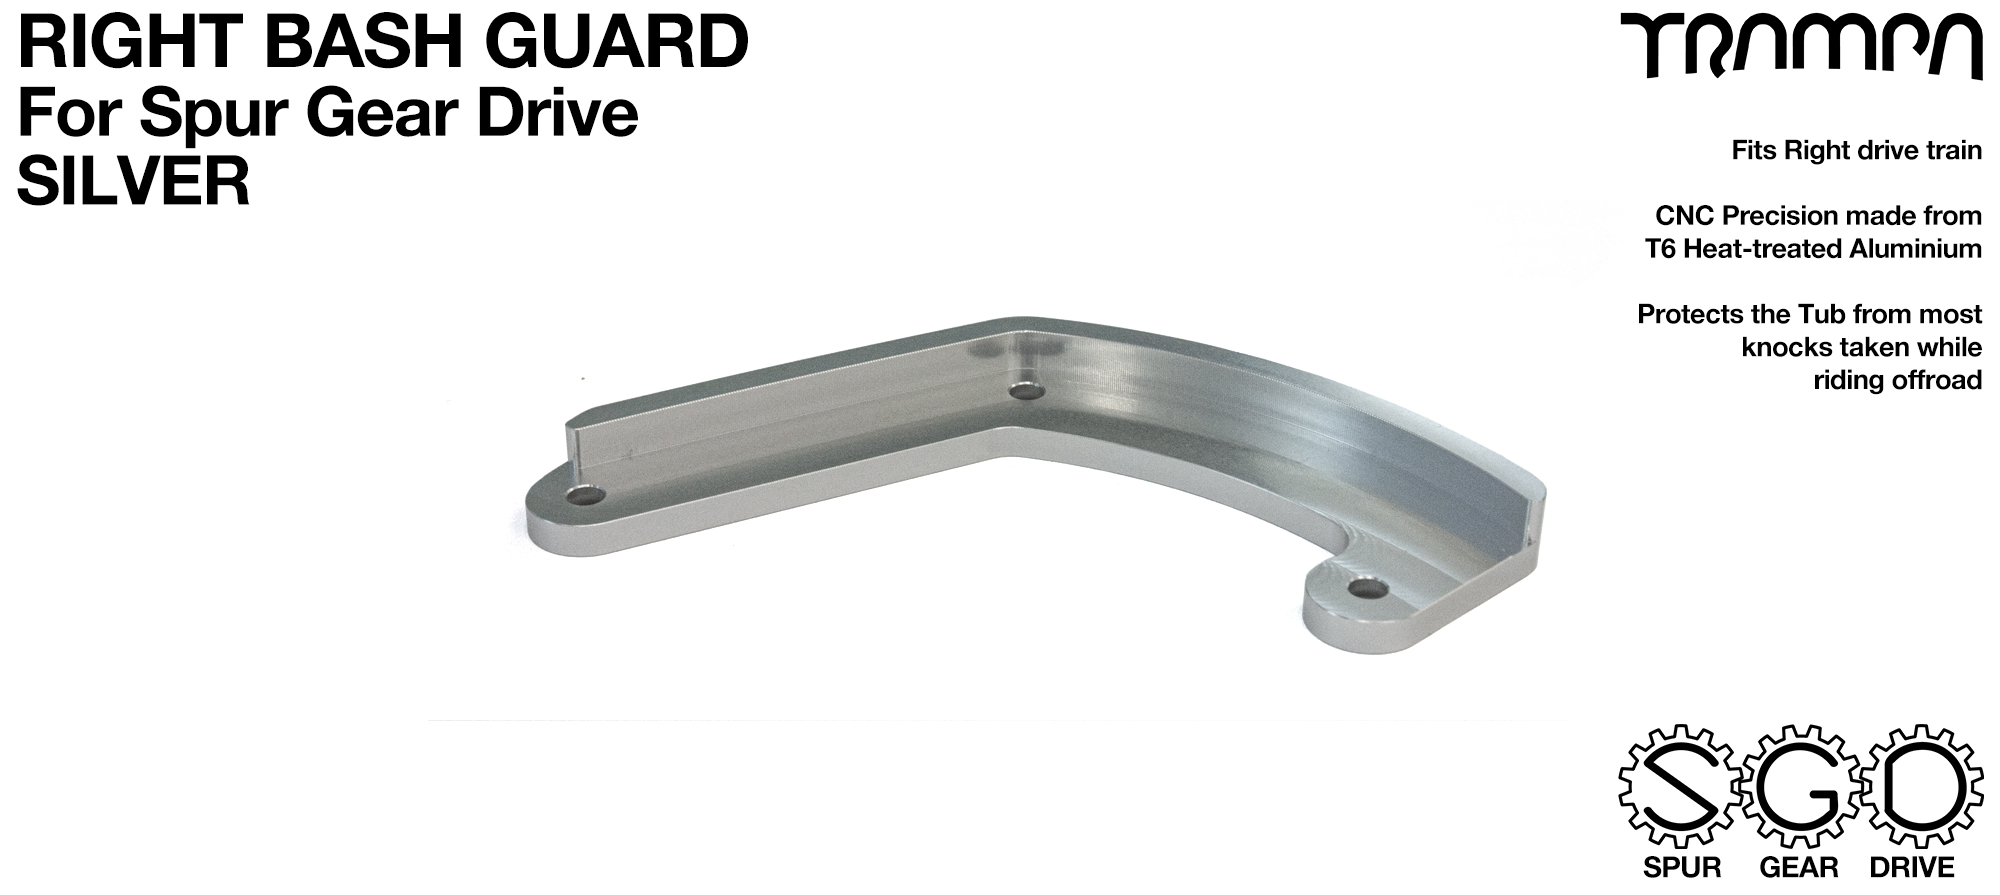 MkII Spur Gear Drive Bash Guard - RIGHT Side